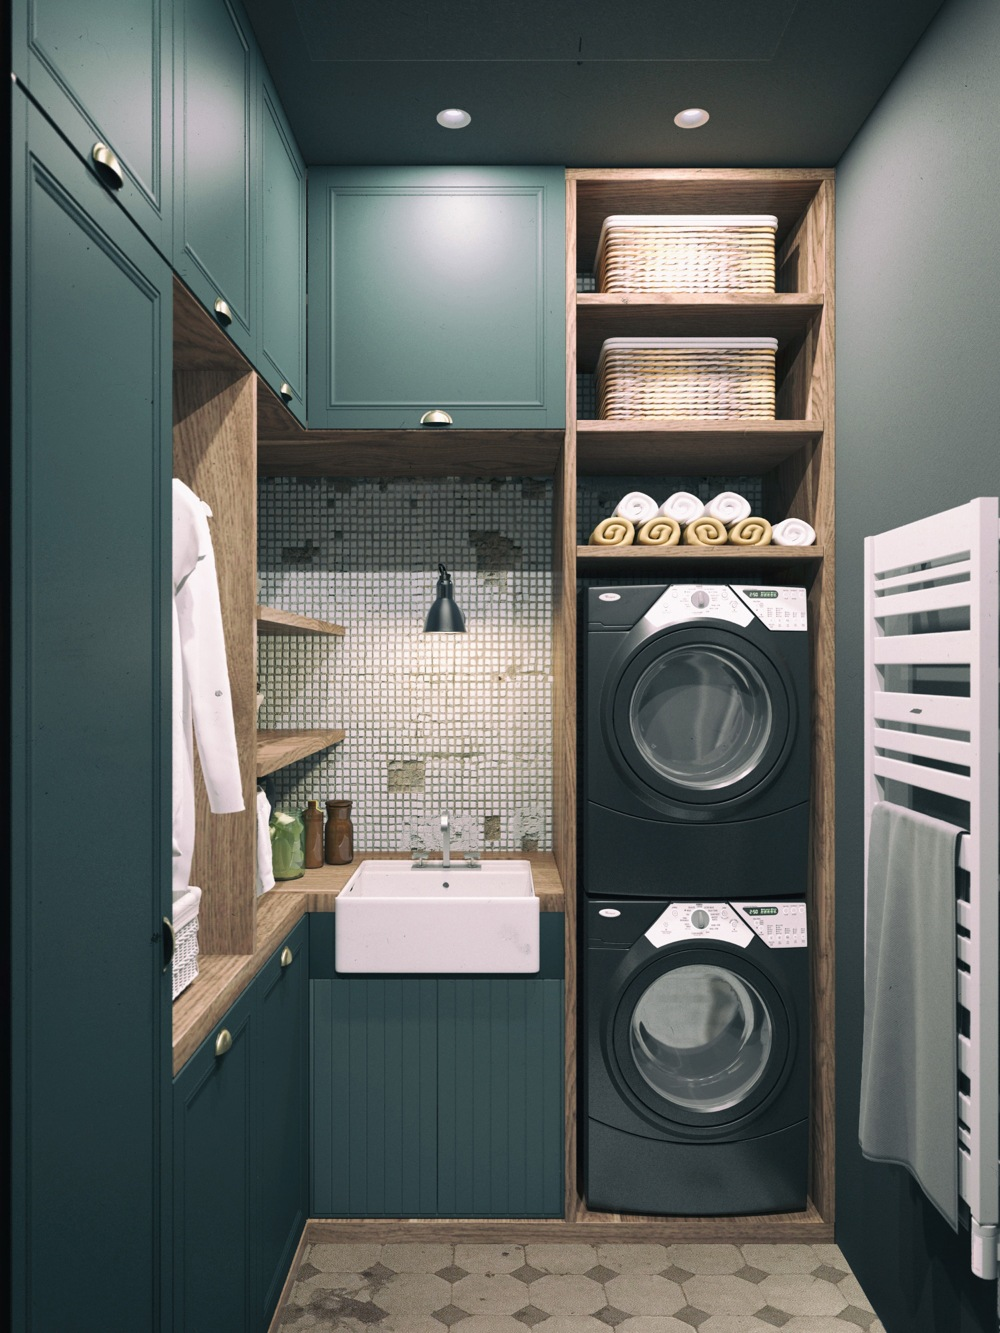 29 Fabulous Ideas How To Add Color To Your Laundry Room  Homelovr